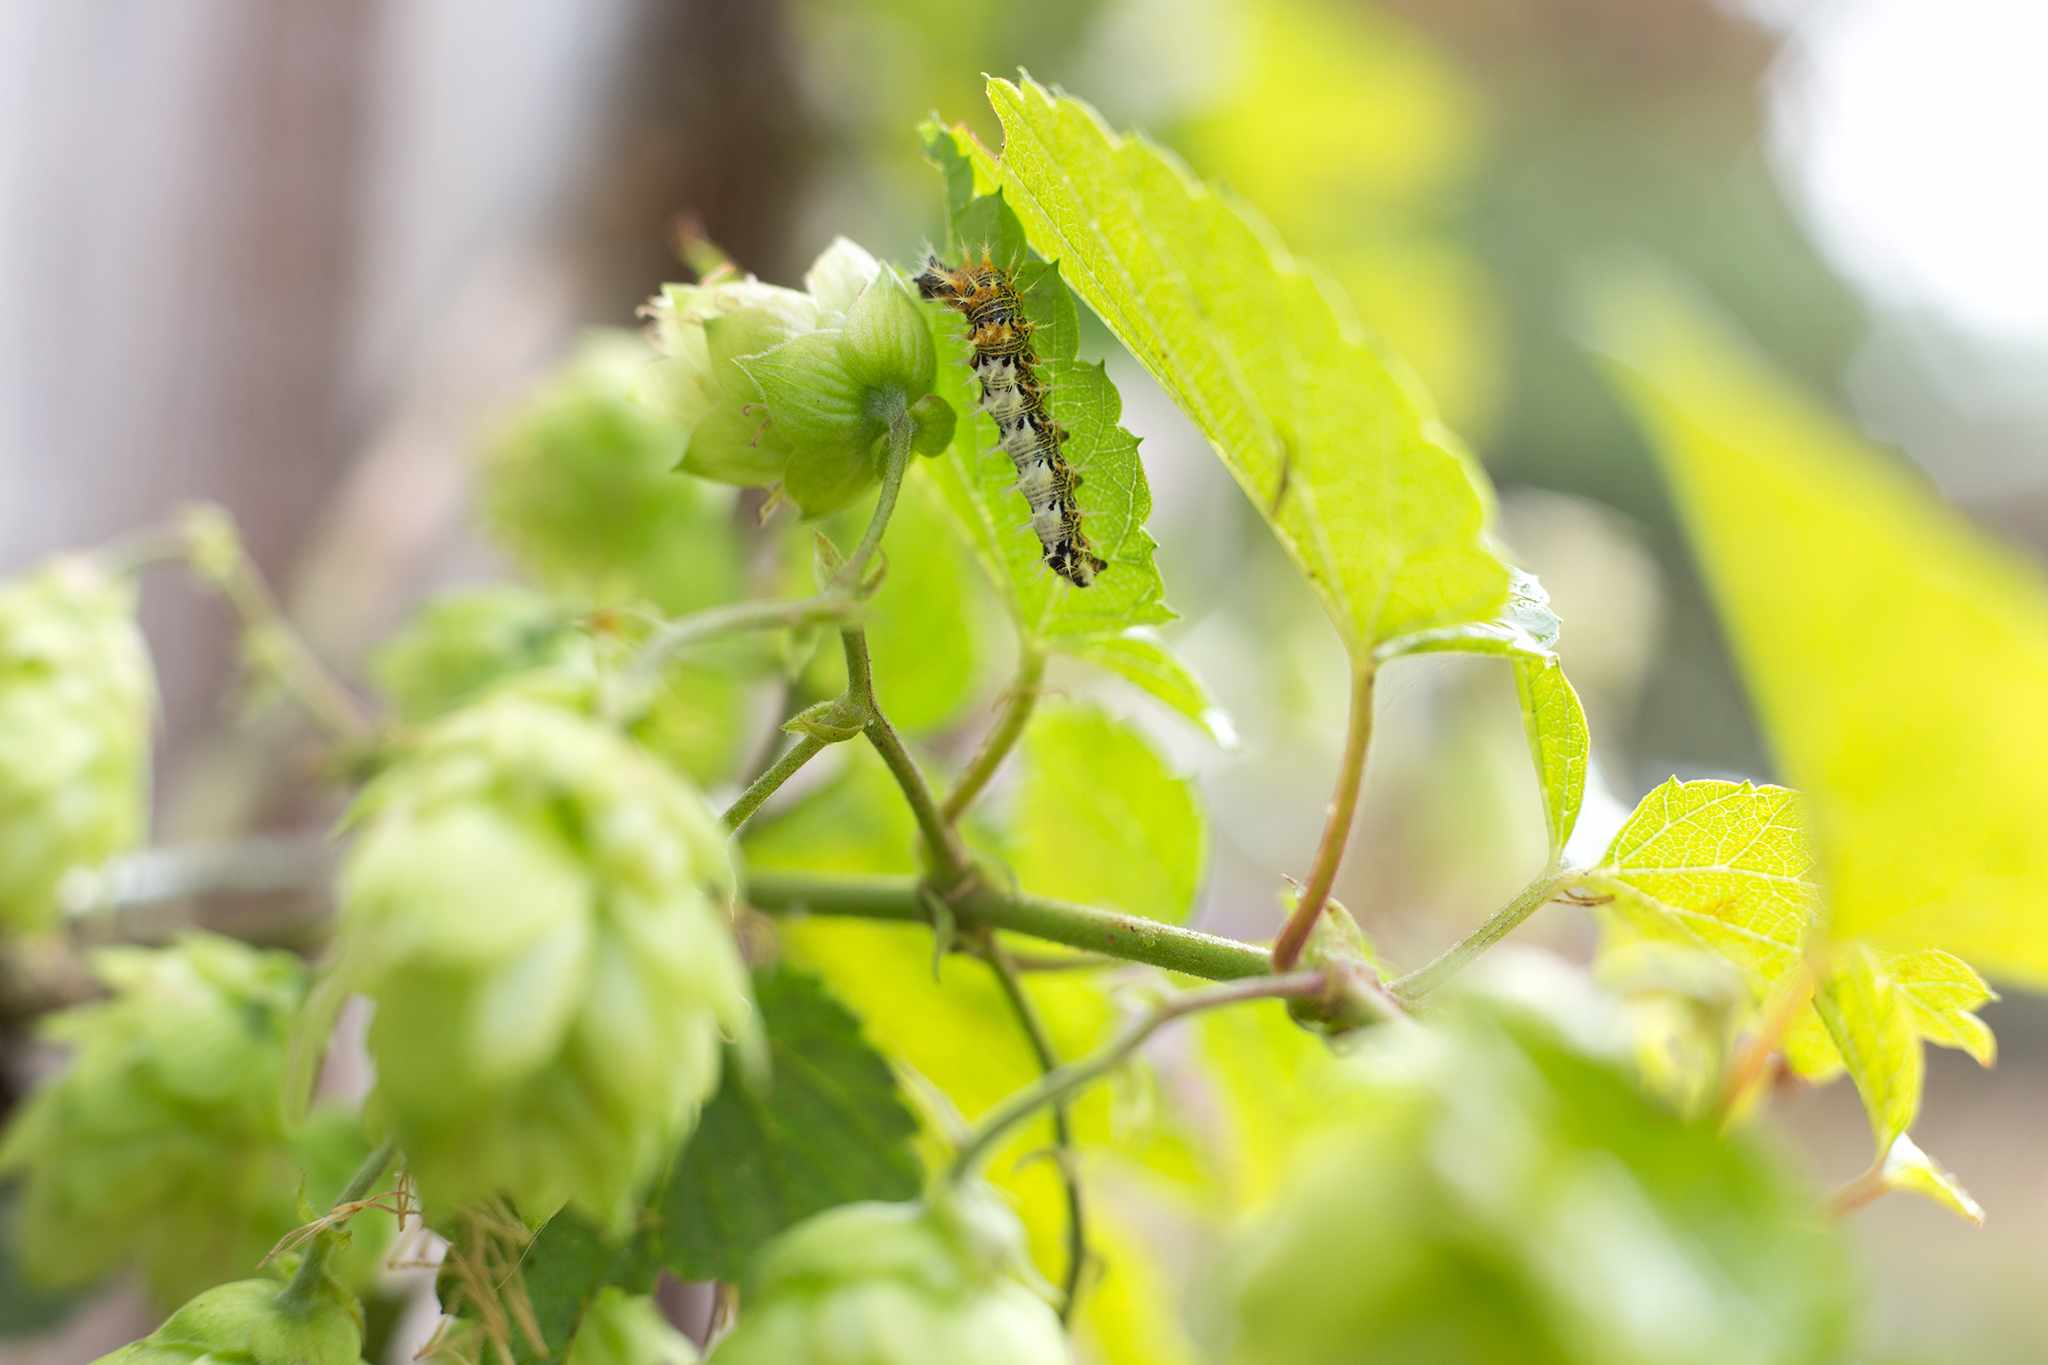 Comma butterfly caterpillar on hop (Humulus lupulus) foliage